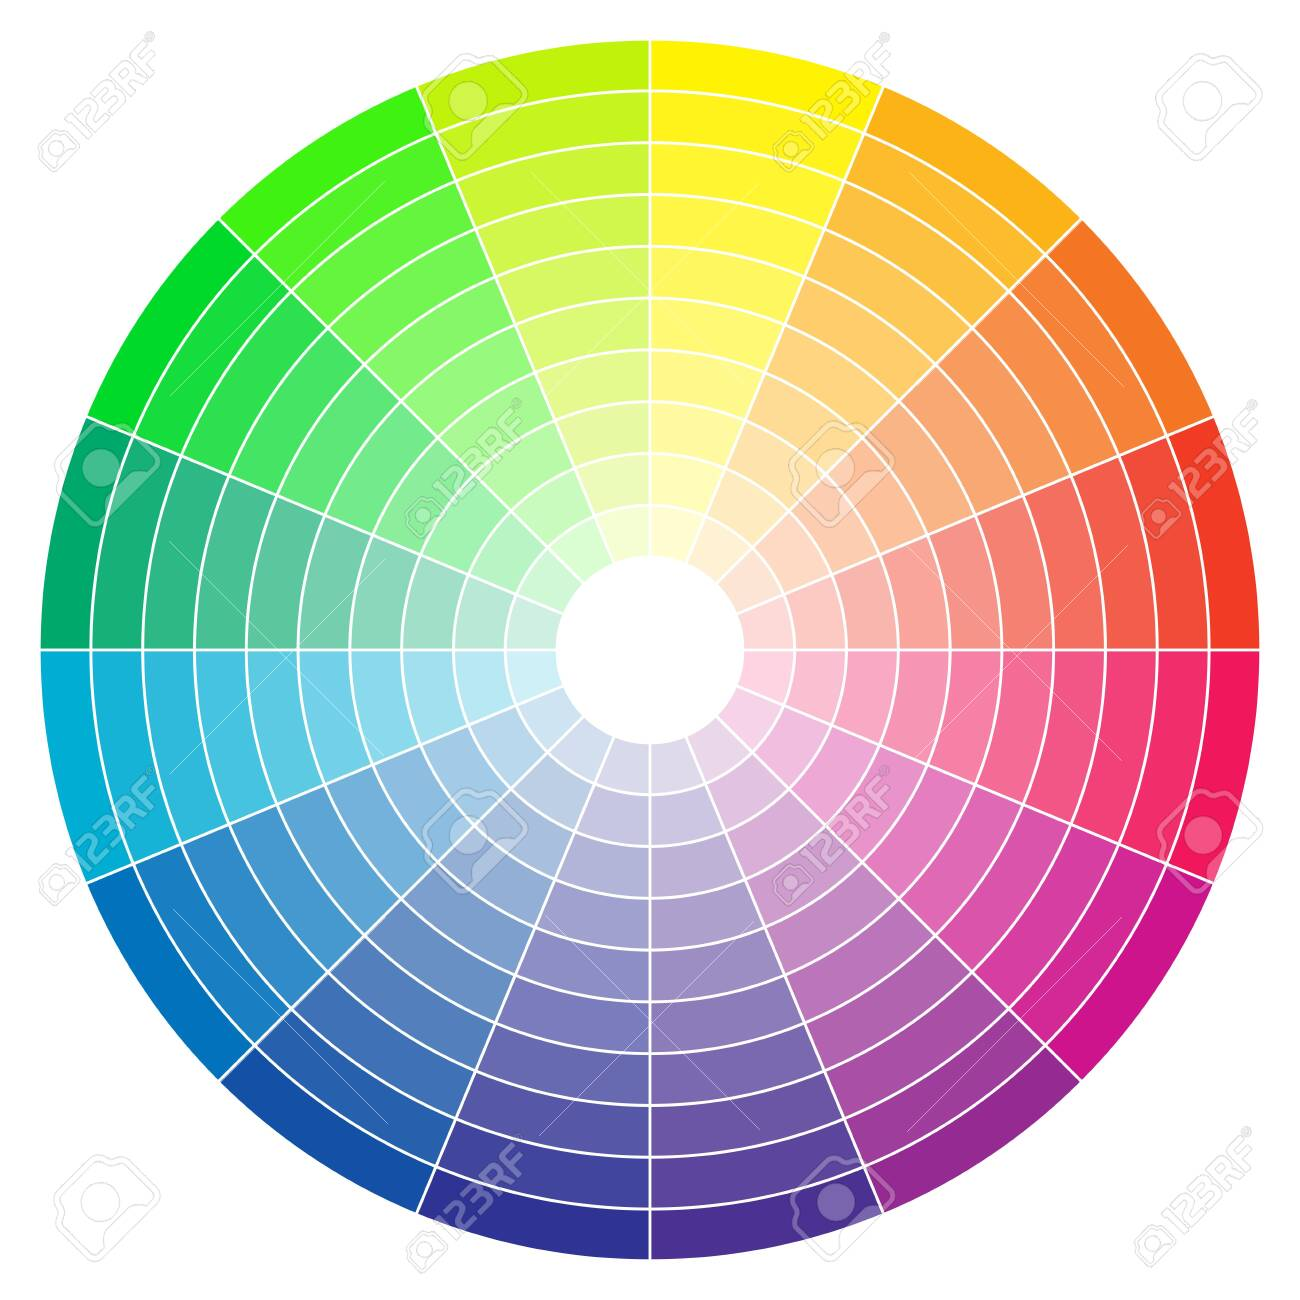 Color spectrum abstract wheel, colorful diagram background. Color wheel isolated on white background. - 150016135